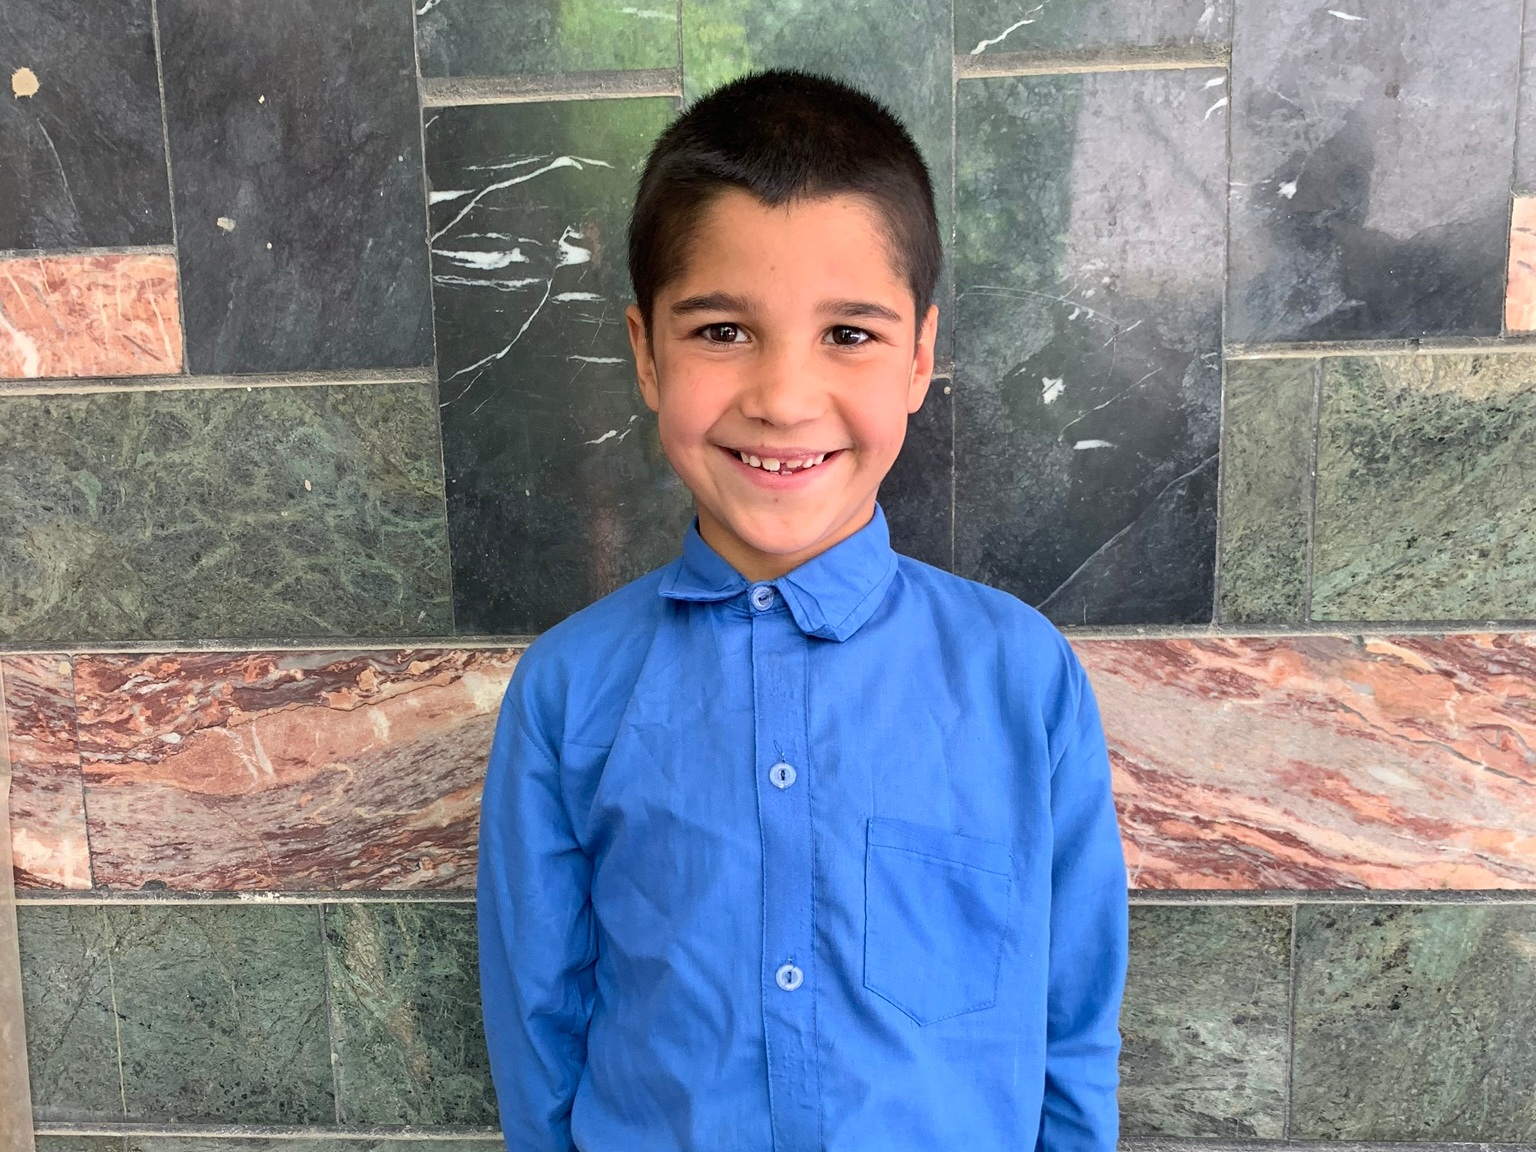 Mohammad Hamid, Age 8 - Mohammad Hamid has 4 siblings. His mother is currently unemployed. His father is a driver.BE MOHAMMAD HAMID'S PARTNER >